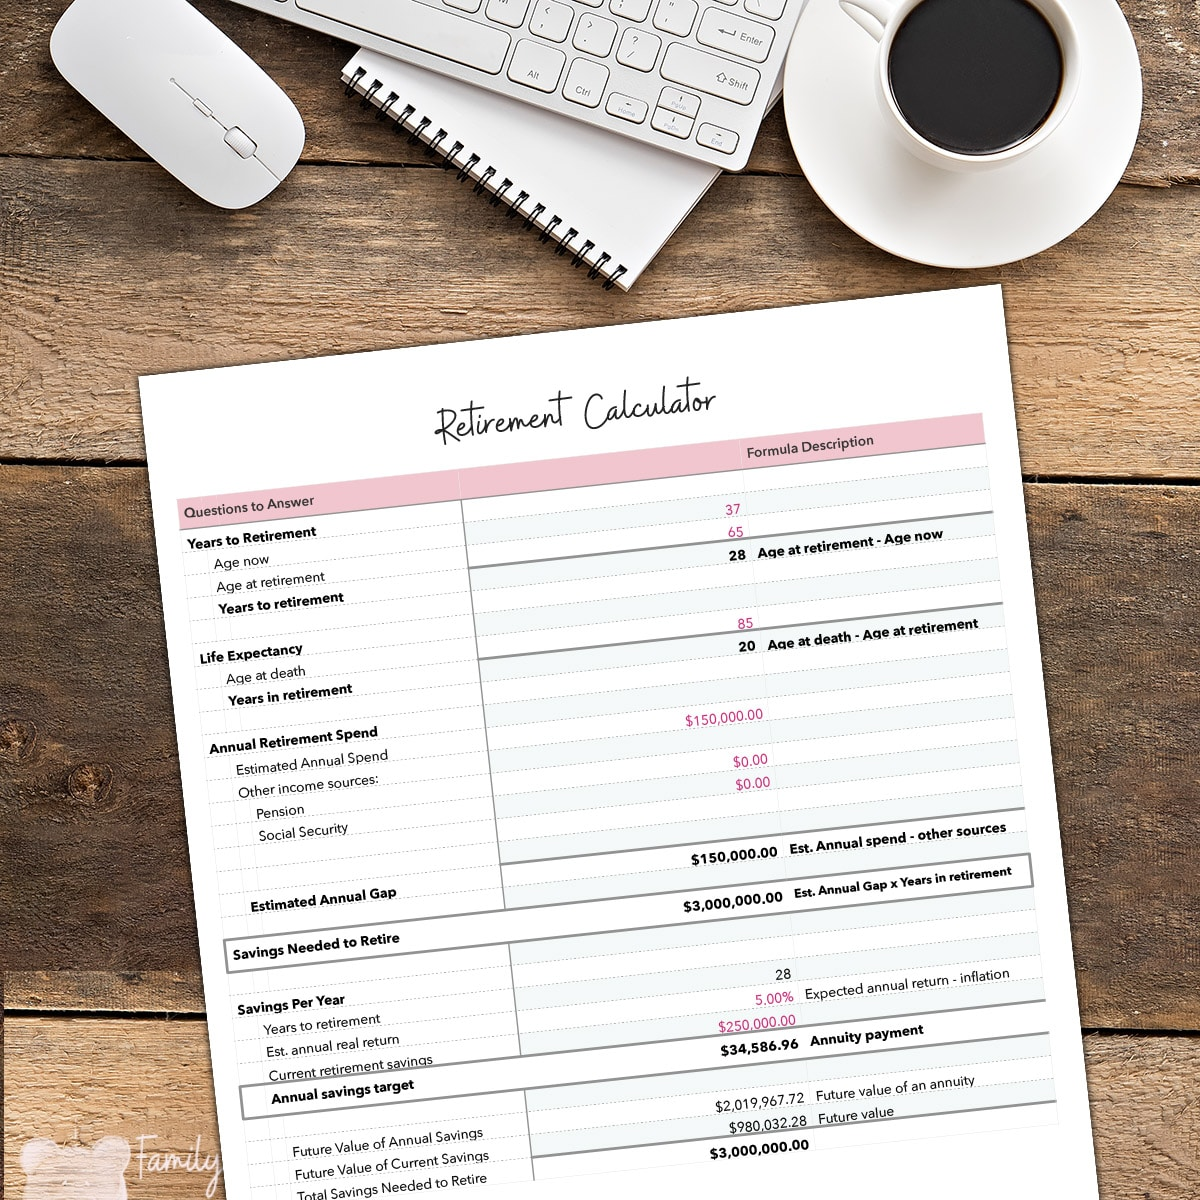 Get your FREE downloadable Retirement Calculator spreadsheet to learn how much you should save for retirement